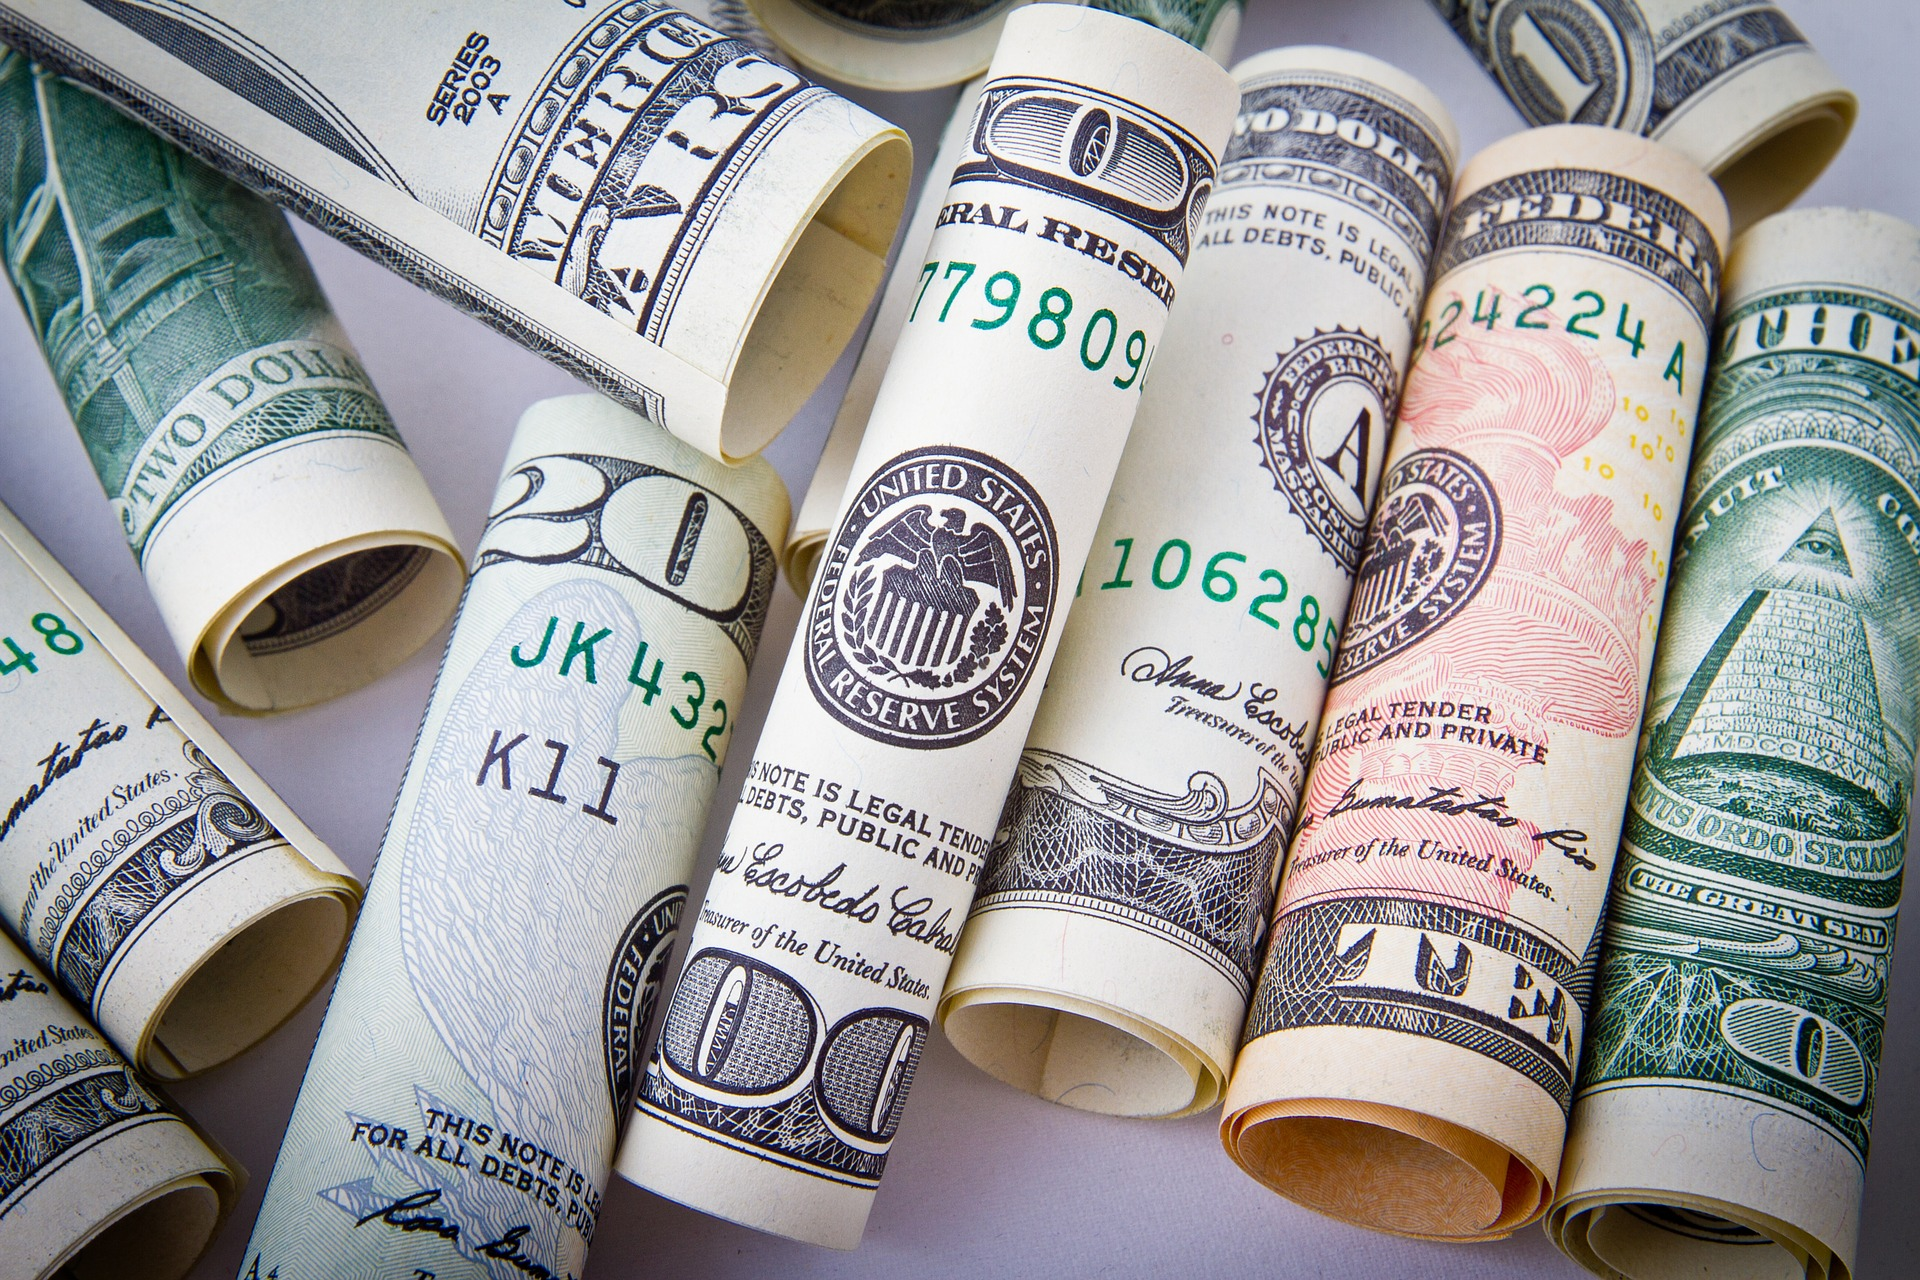 unclaimed funds in Illinois